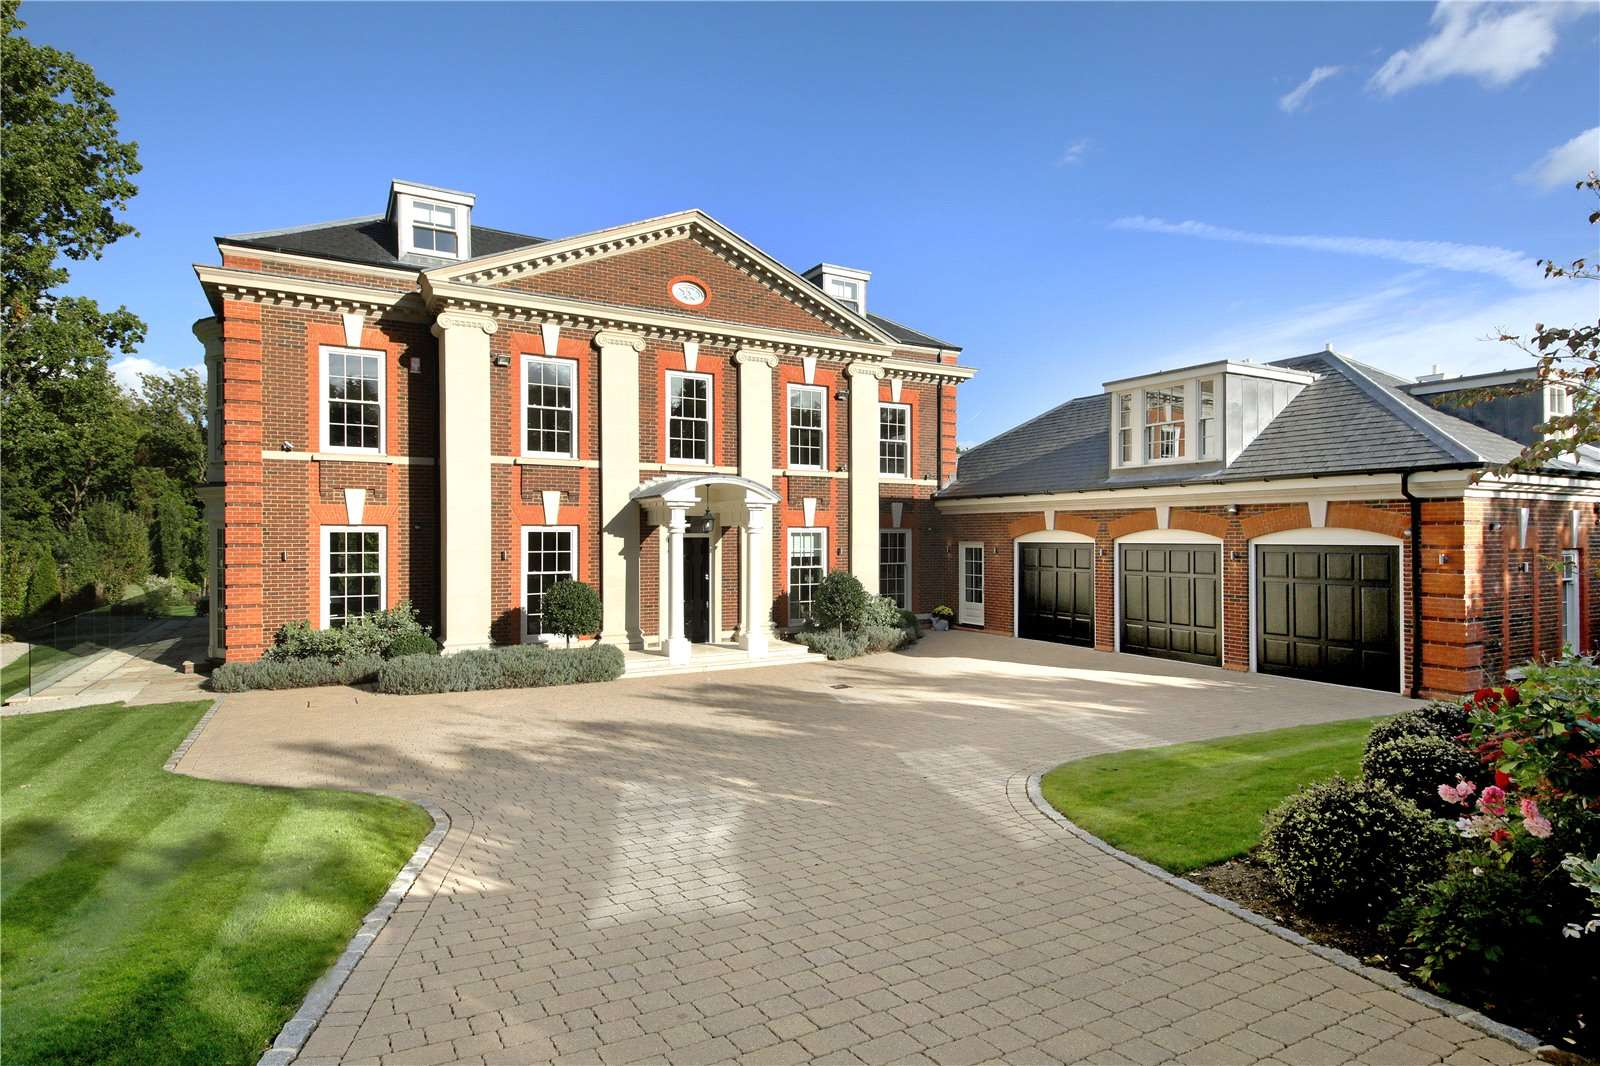 A stunning family home built by the multi award winning developers royalton located on the prestigious crown estate oxshott for sale